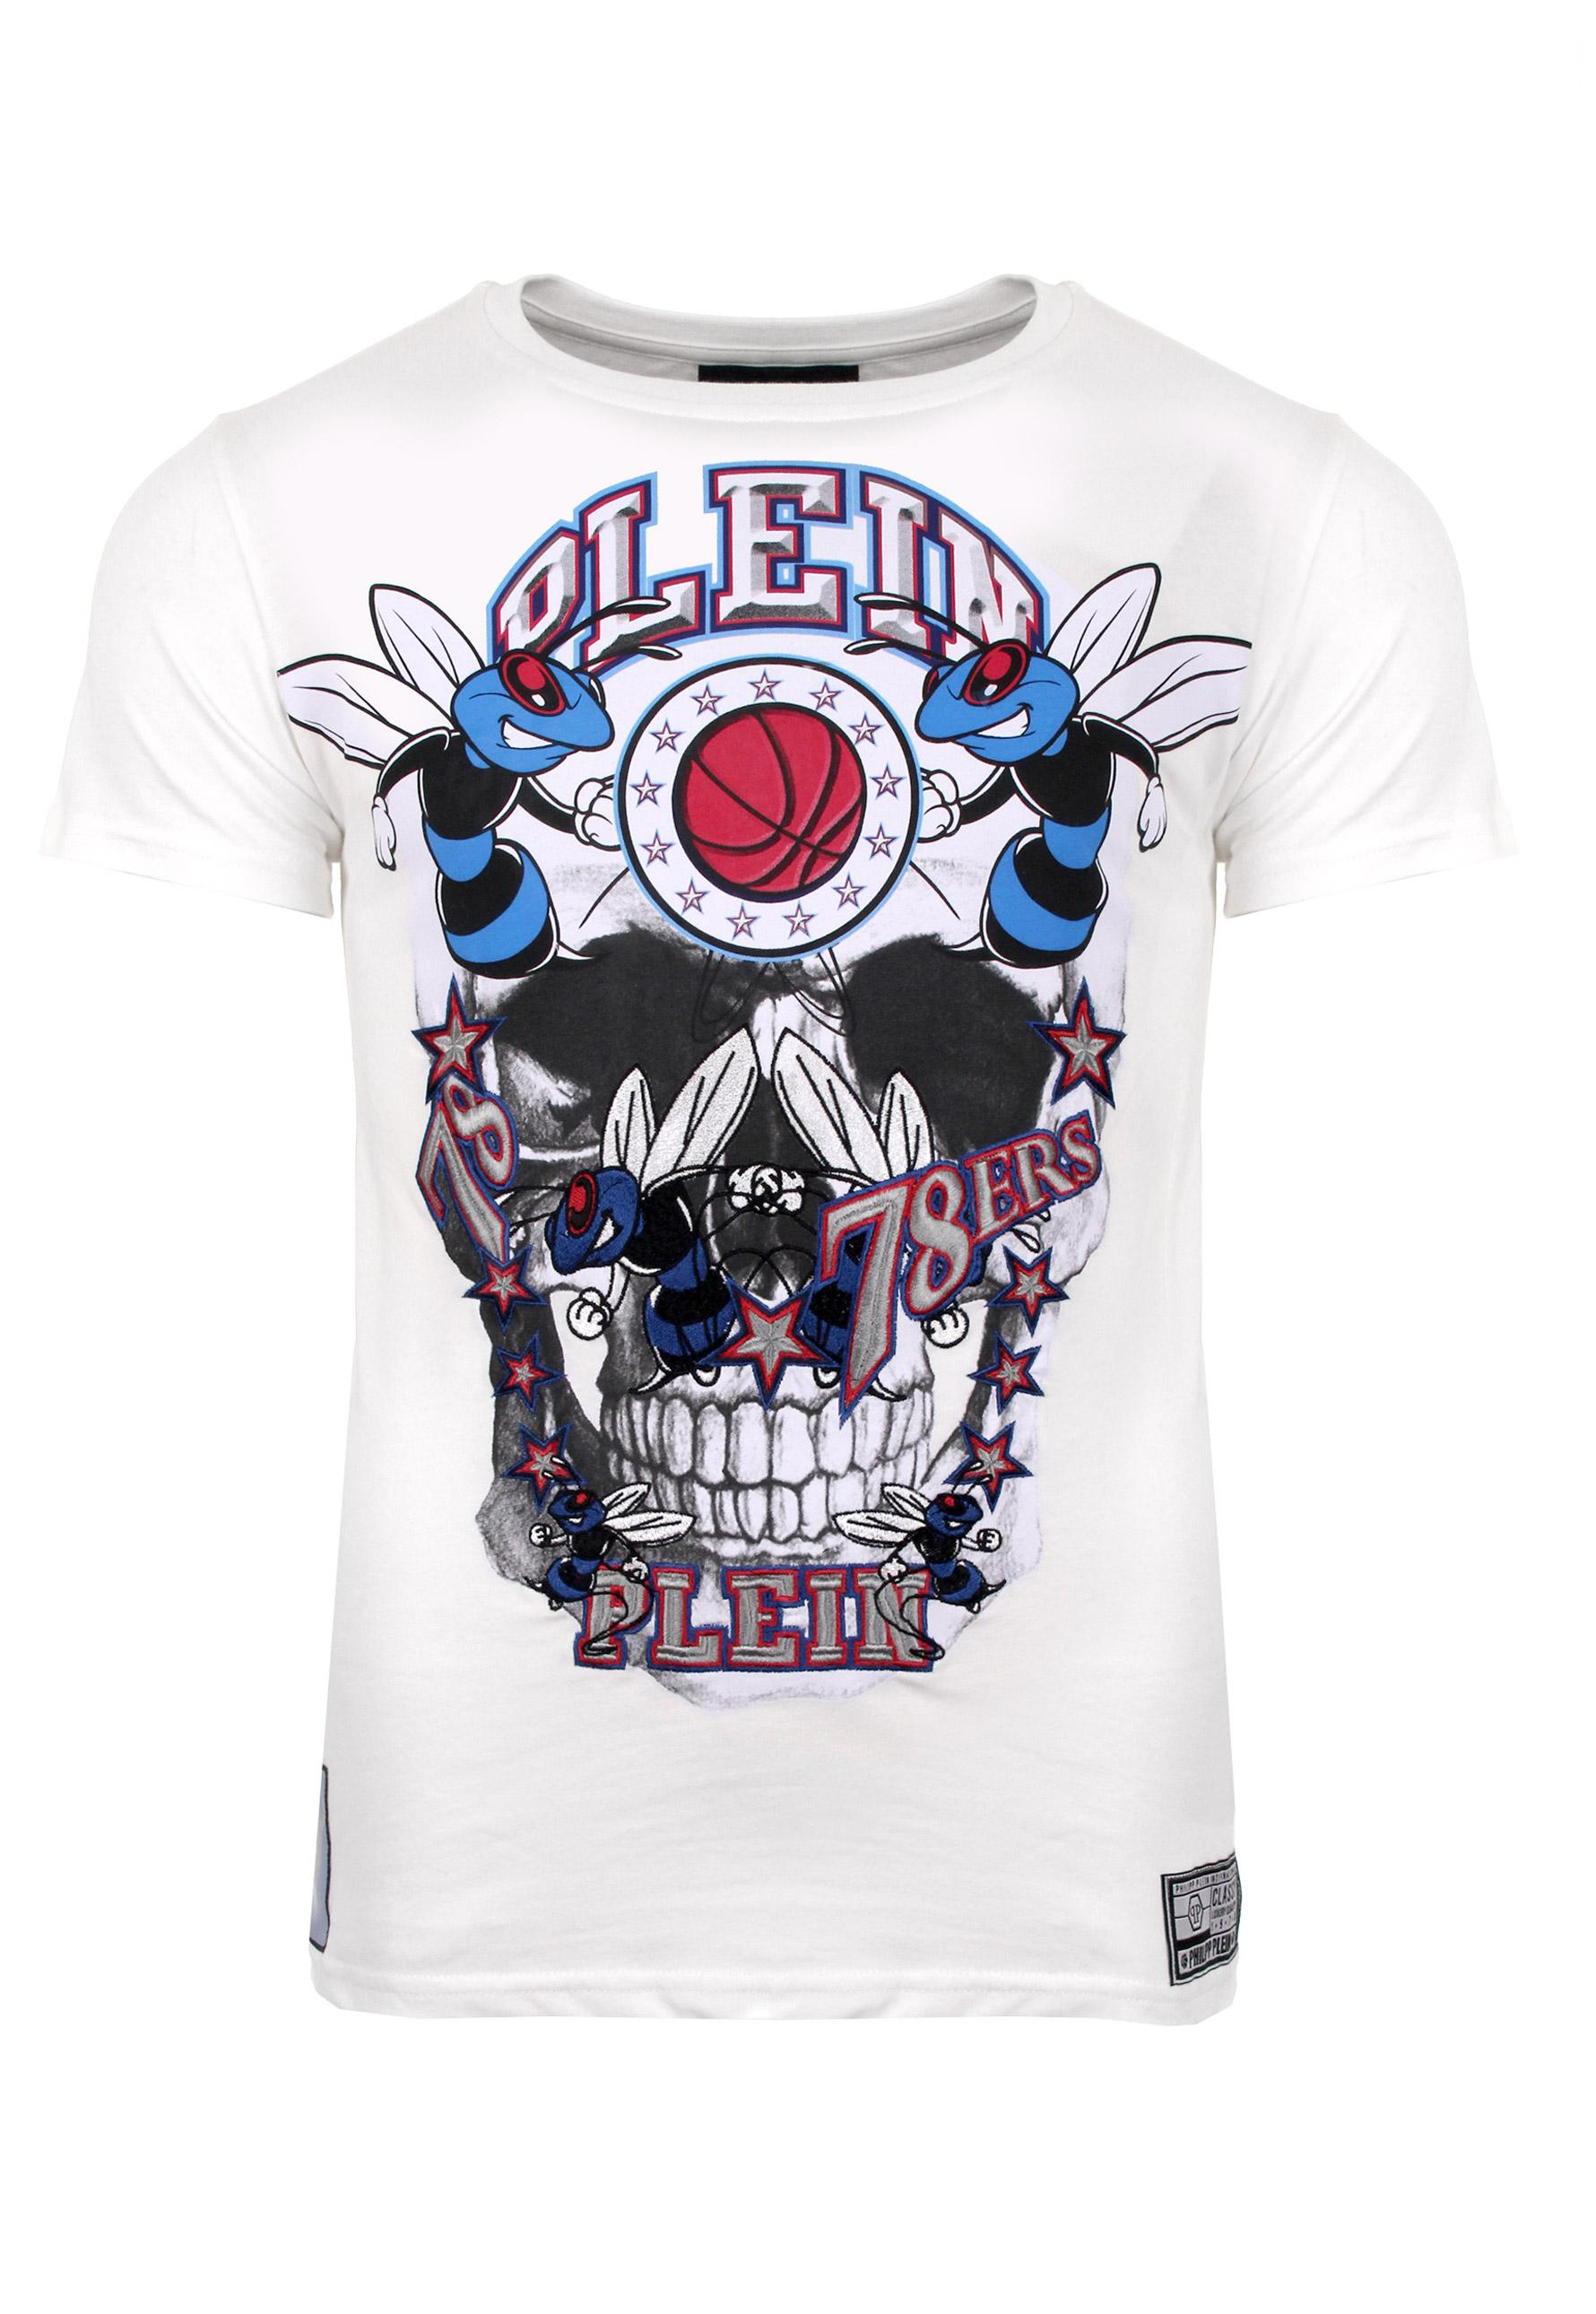 philipp plein cadet round neck t shirt white in white for men lyst. Black Bedroom Furniture Sets. Home Design Ideas